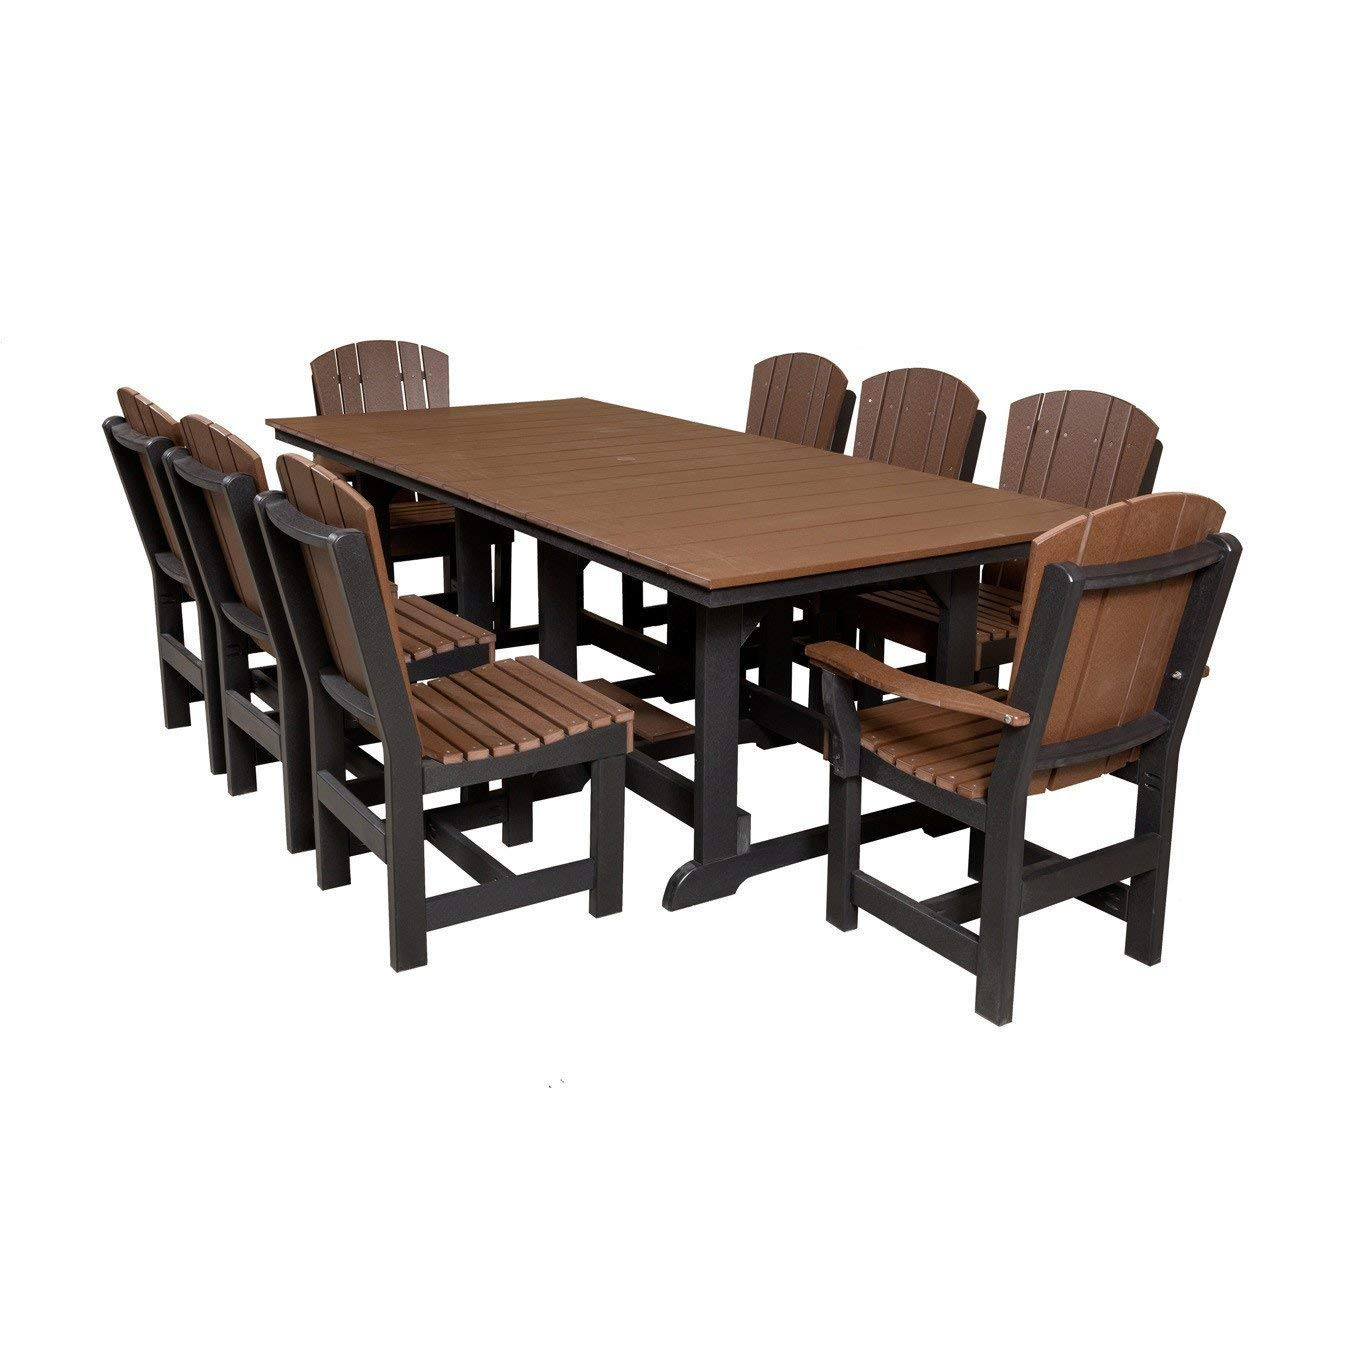 "Wildridge Recycled Plastic Heritage 44""x94"" Table with 8 Dining Chairs - Ships in 10-14 Business Days"